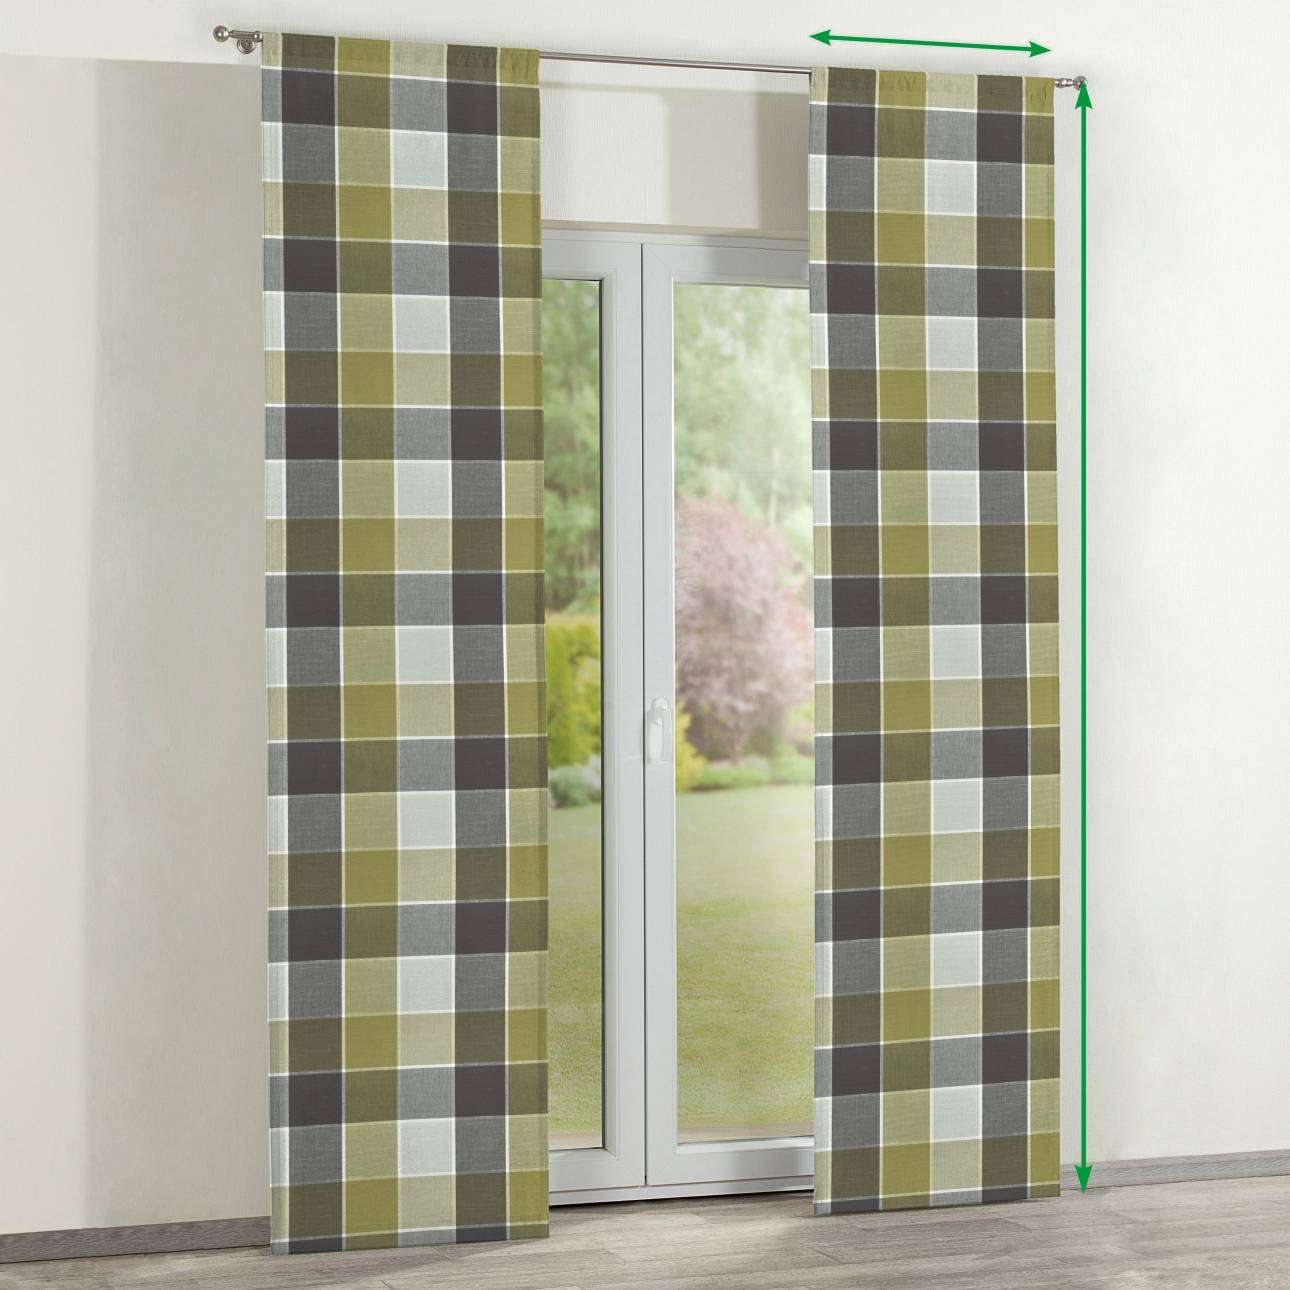 Slot panel curtains – Set of 2 in collection Cardiff, fabric: 136-20